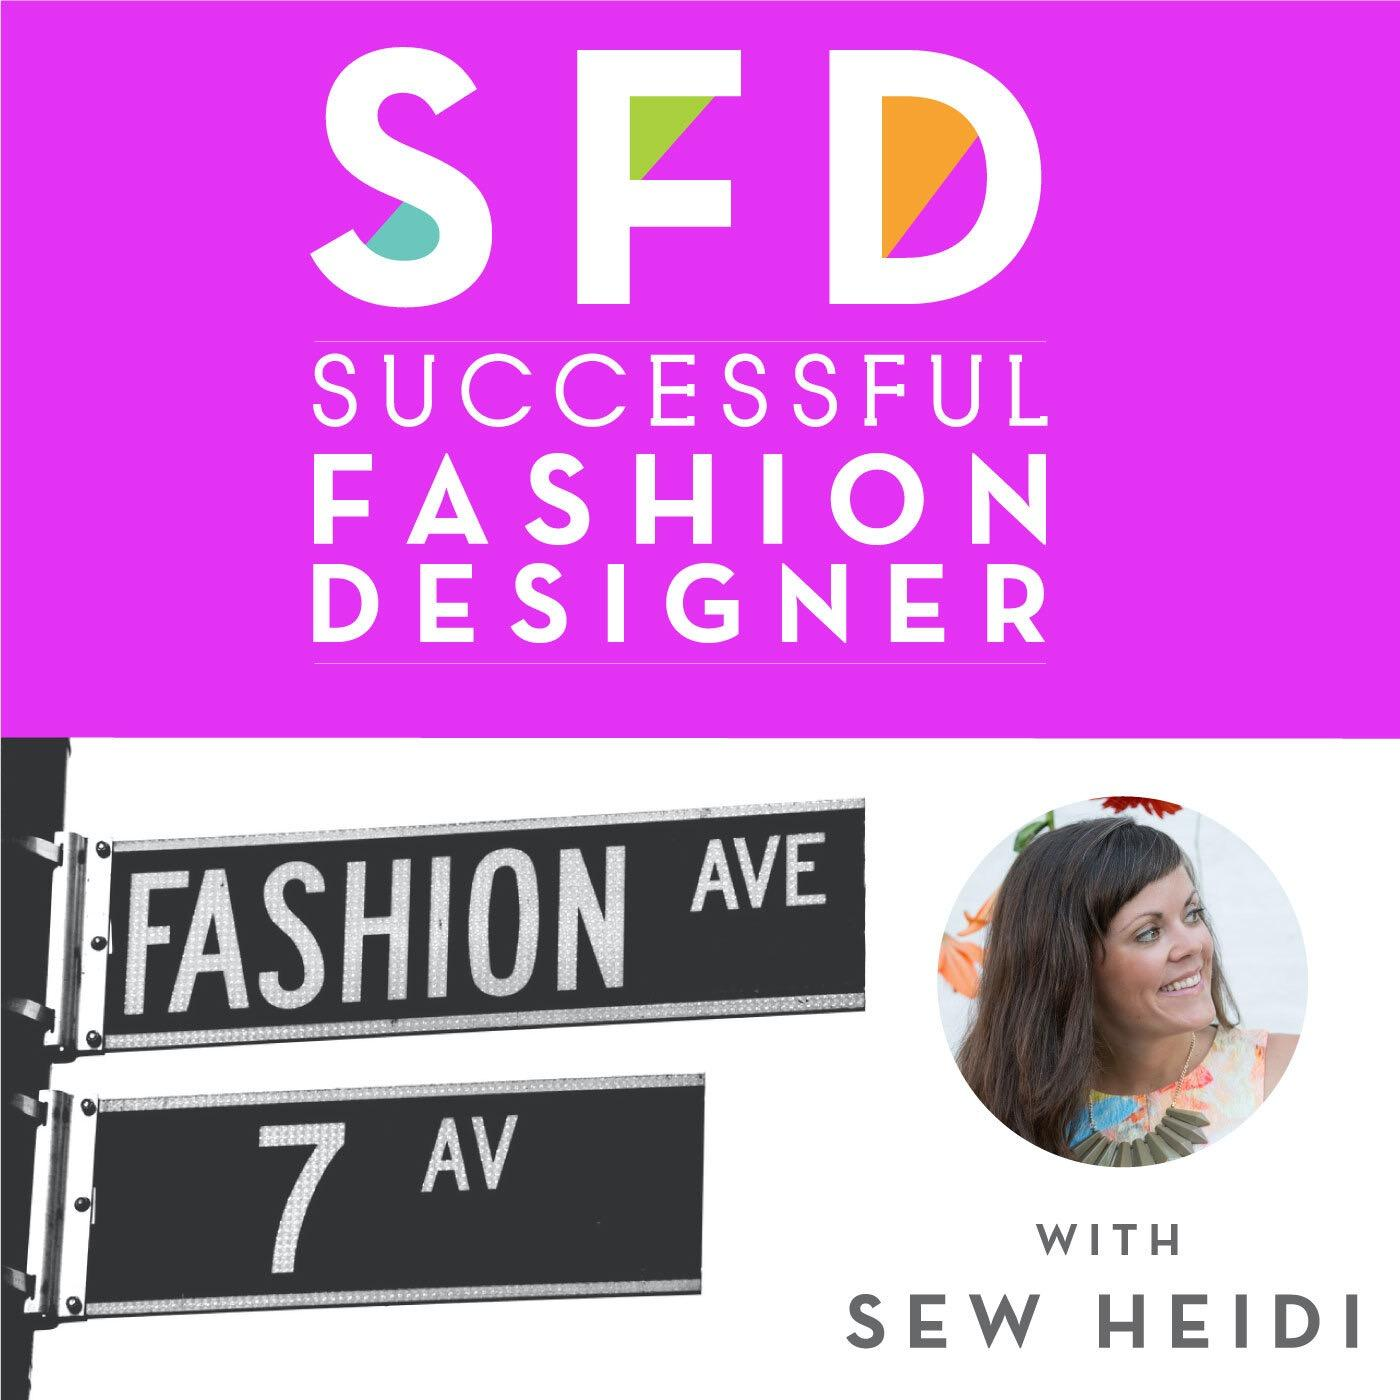 Sfd108 How To Become A Senior Fashion Designer By Age 27 The Successful Fashion Designer Lyssna Har Poddtoppen Se